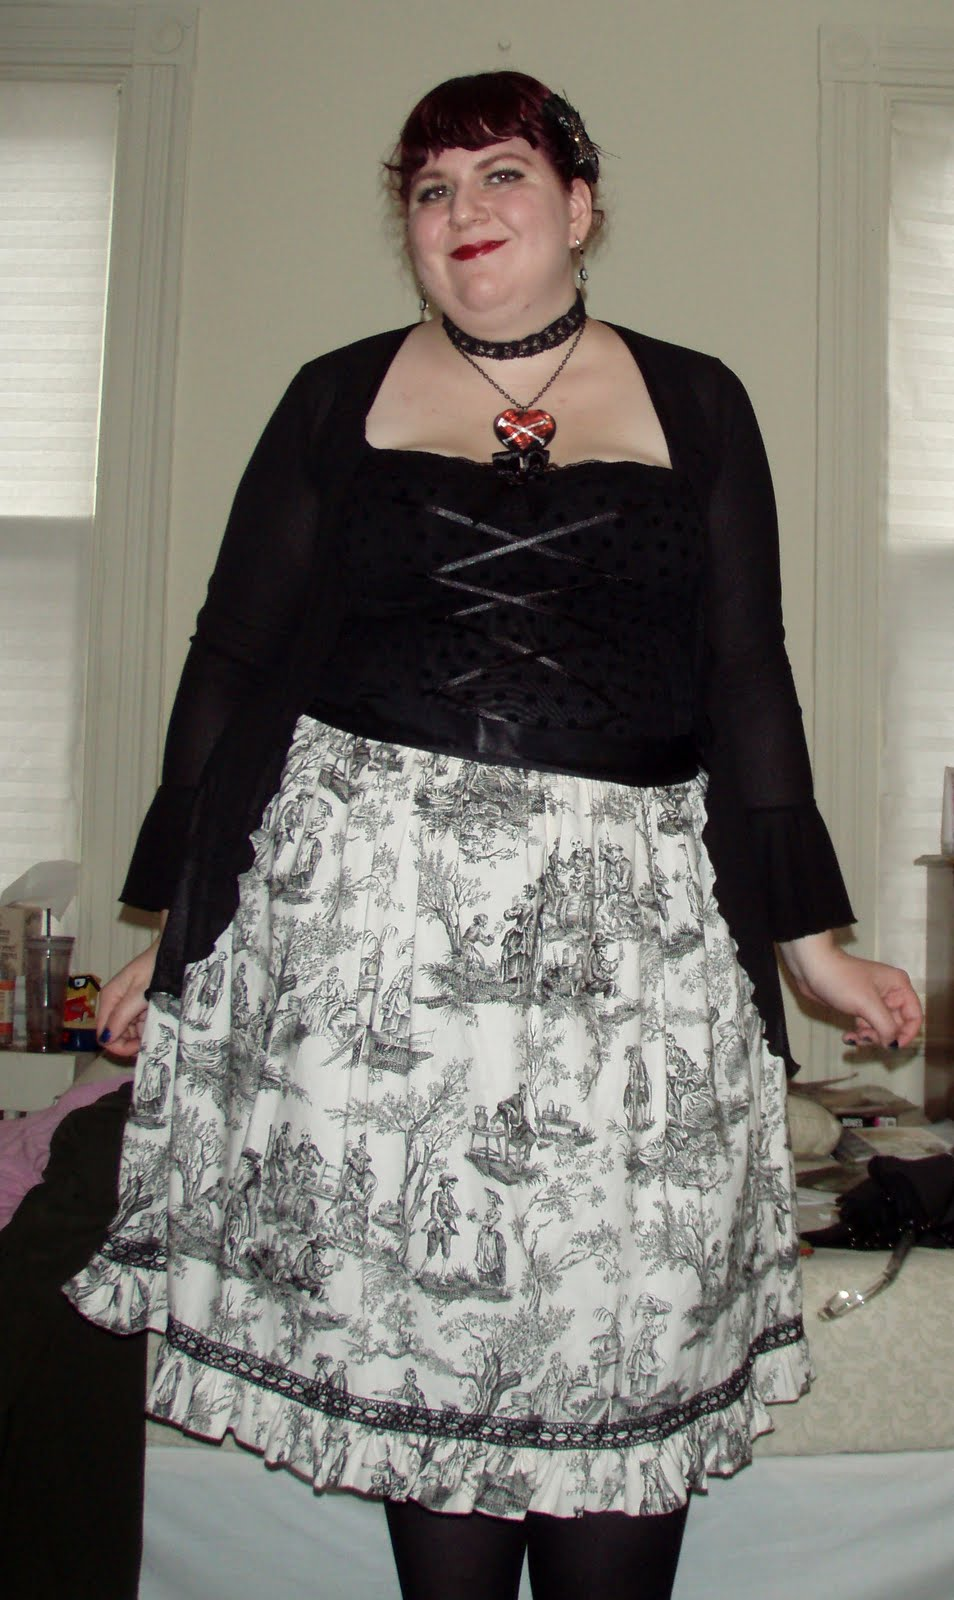 OOTD: Torrid, why must we play these silly games?   Ruffles Not Diets